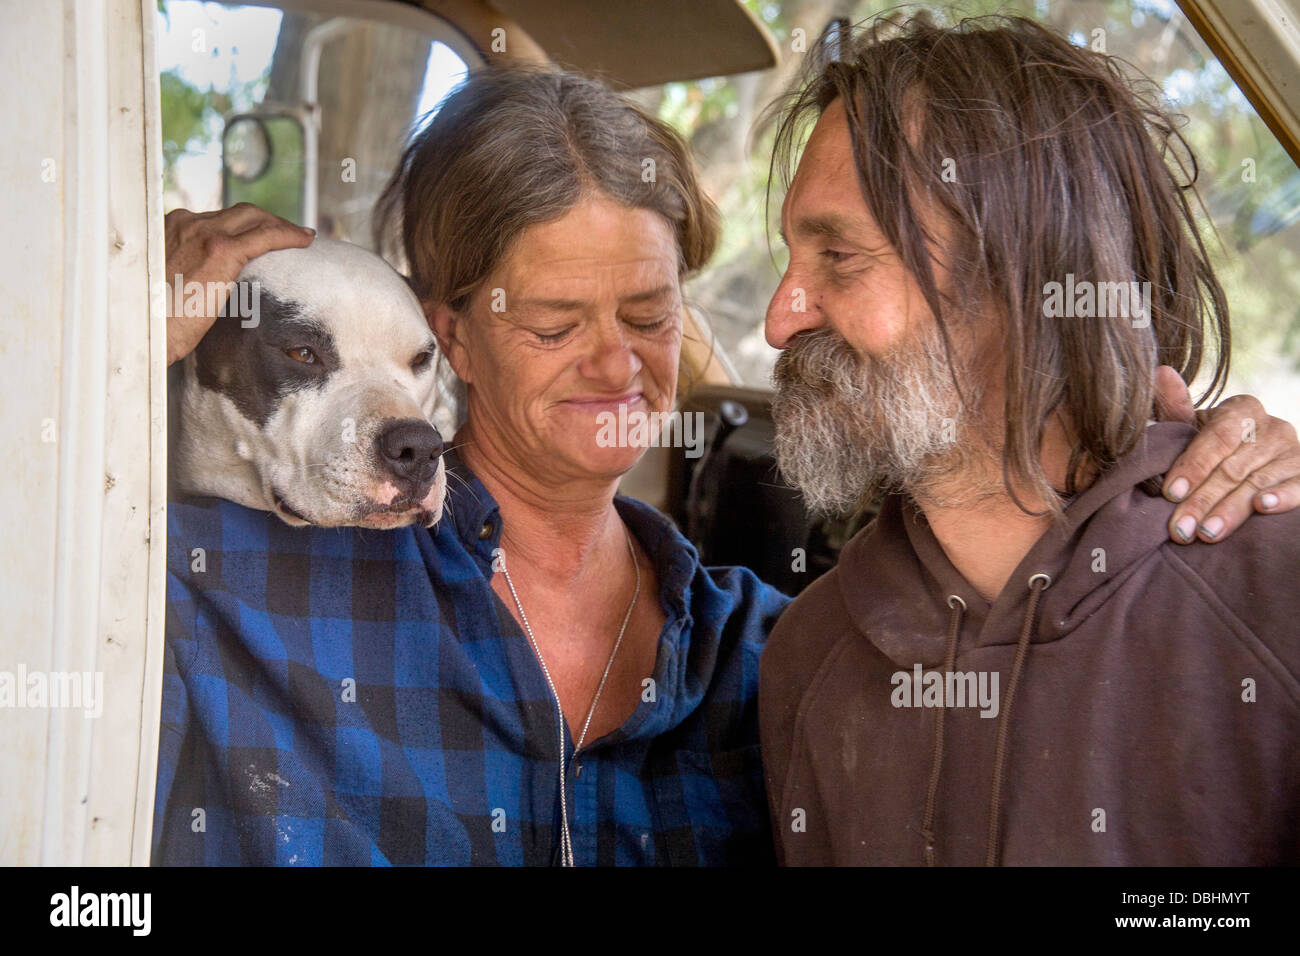 An affectionate indigent couple and their dog live in a truck camper among homeless residents of a primitive outdoor - Stock Image